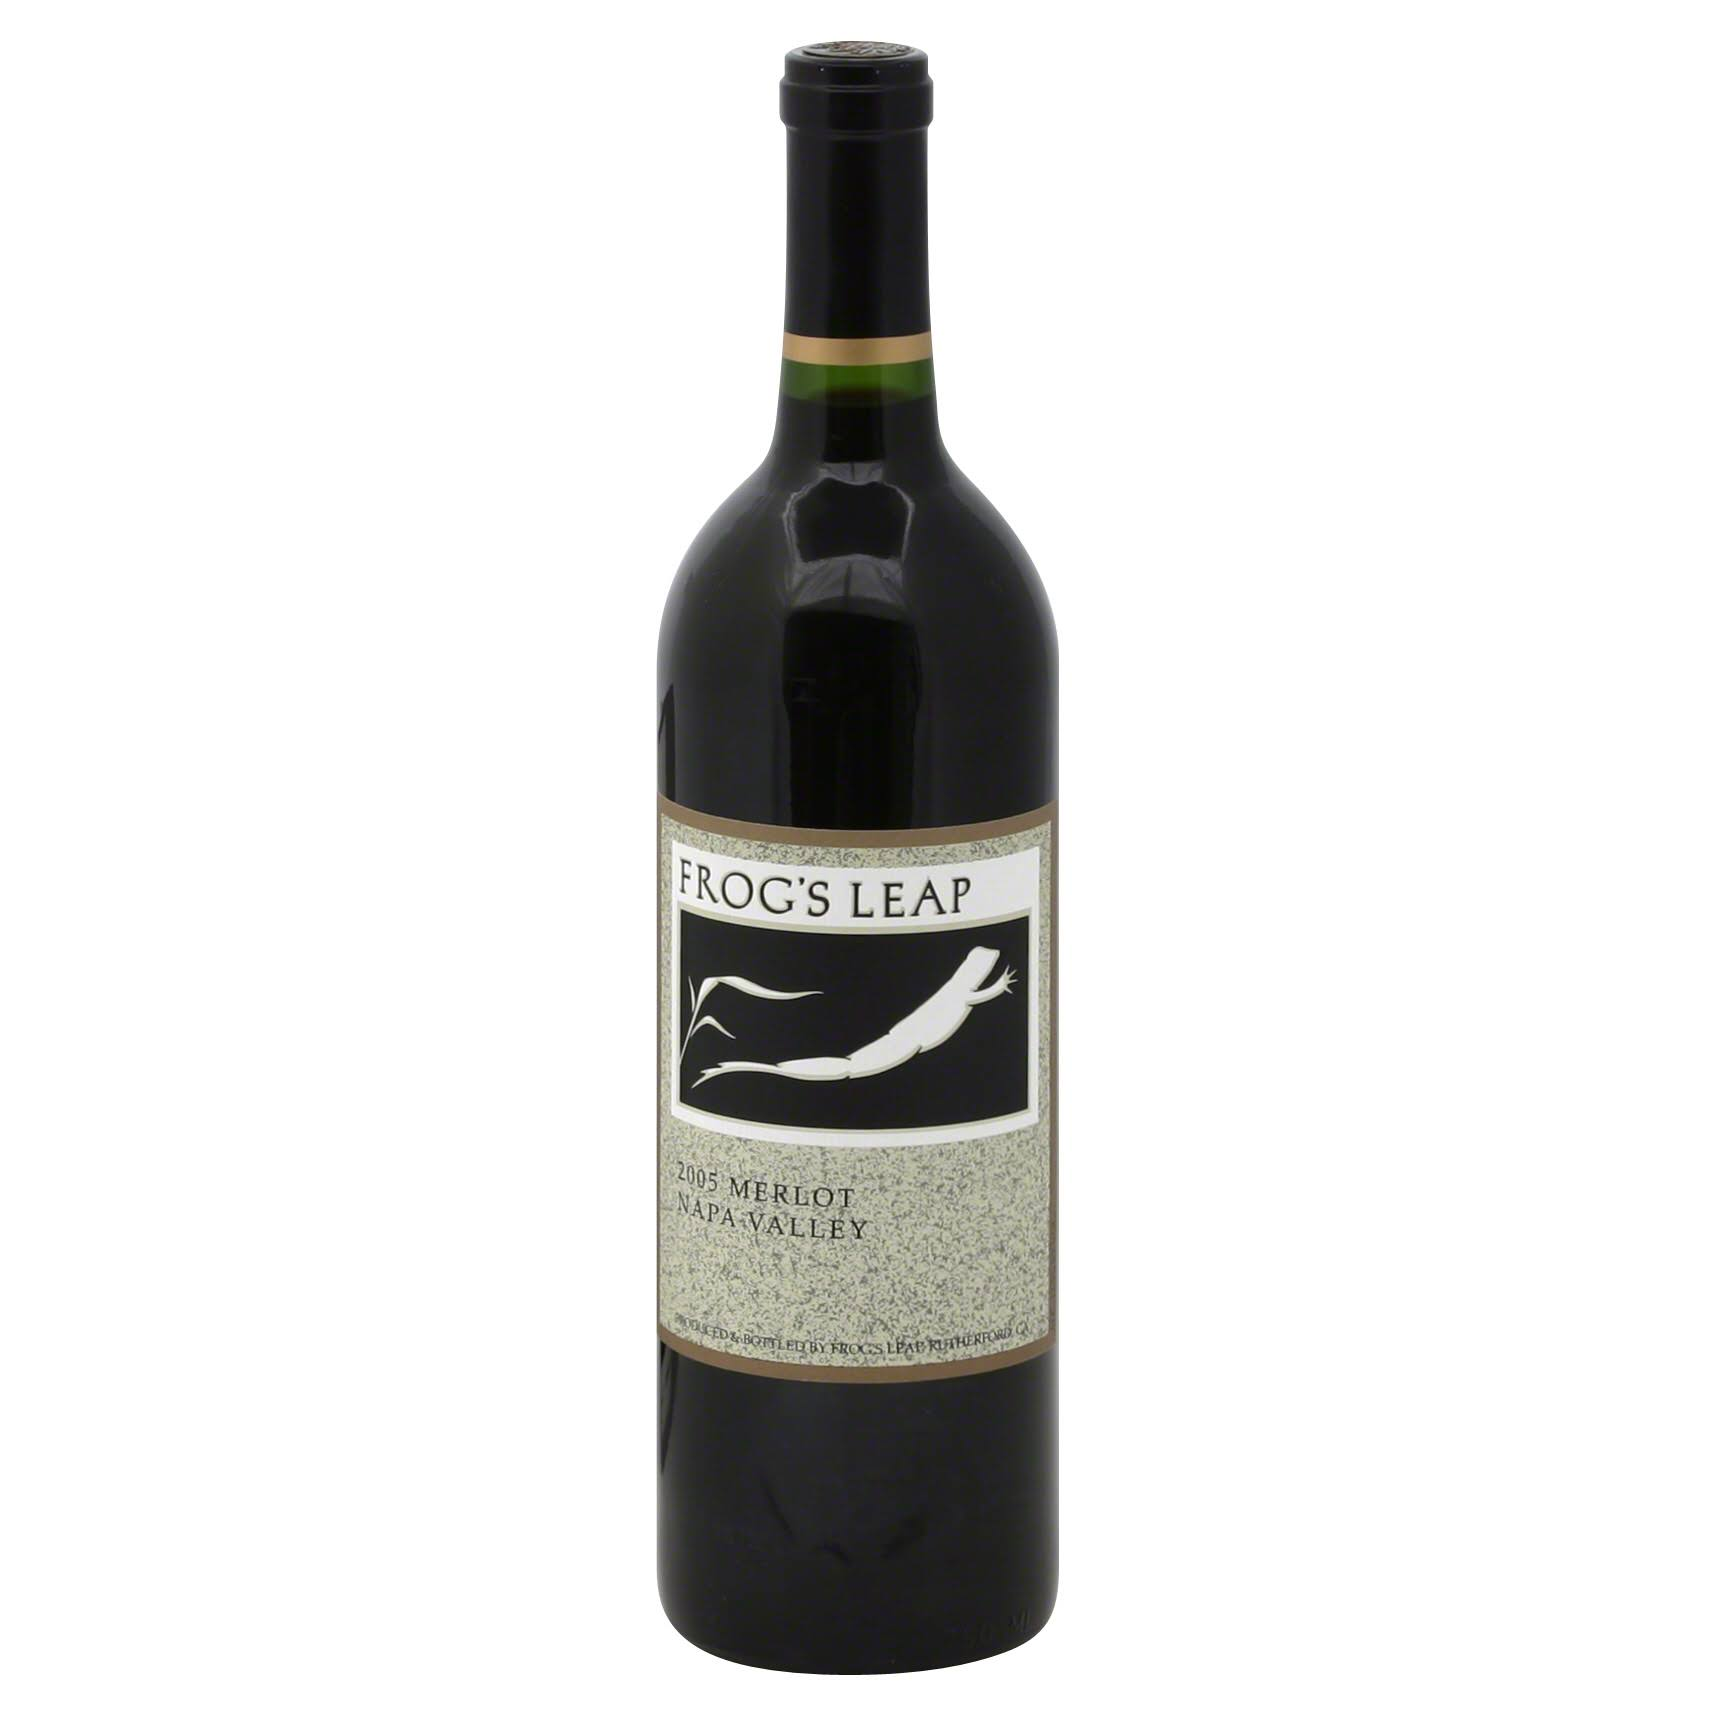 Frog's Leap Merlot Wine - 750ml